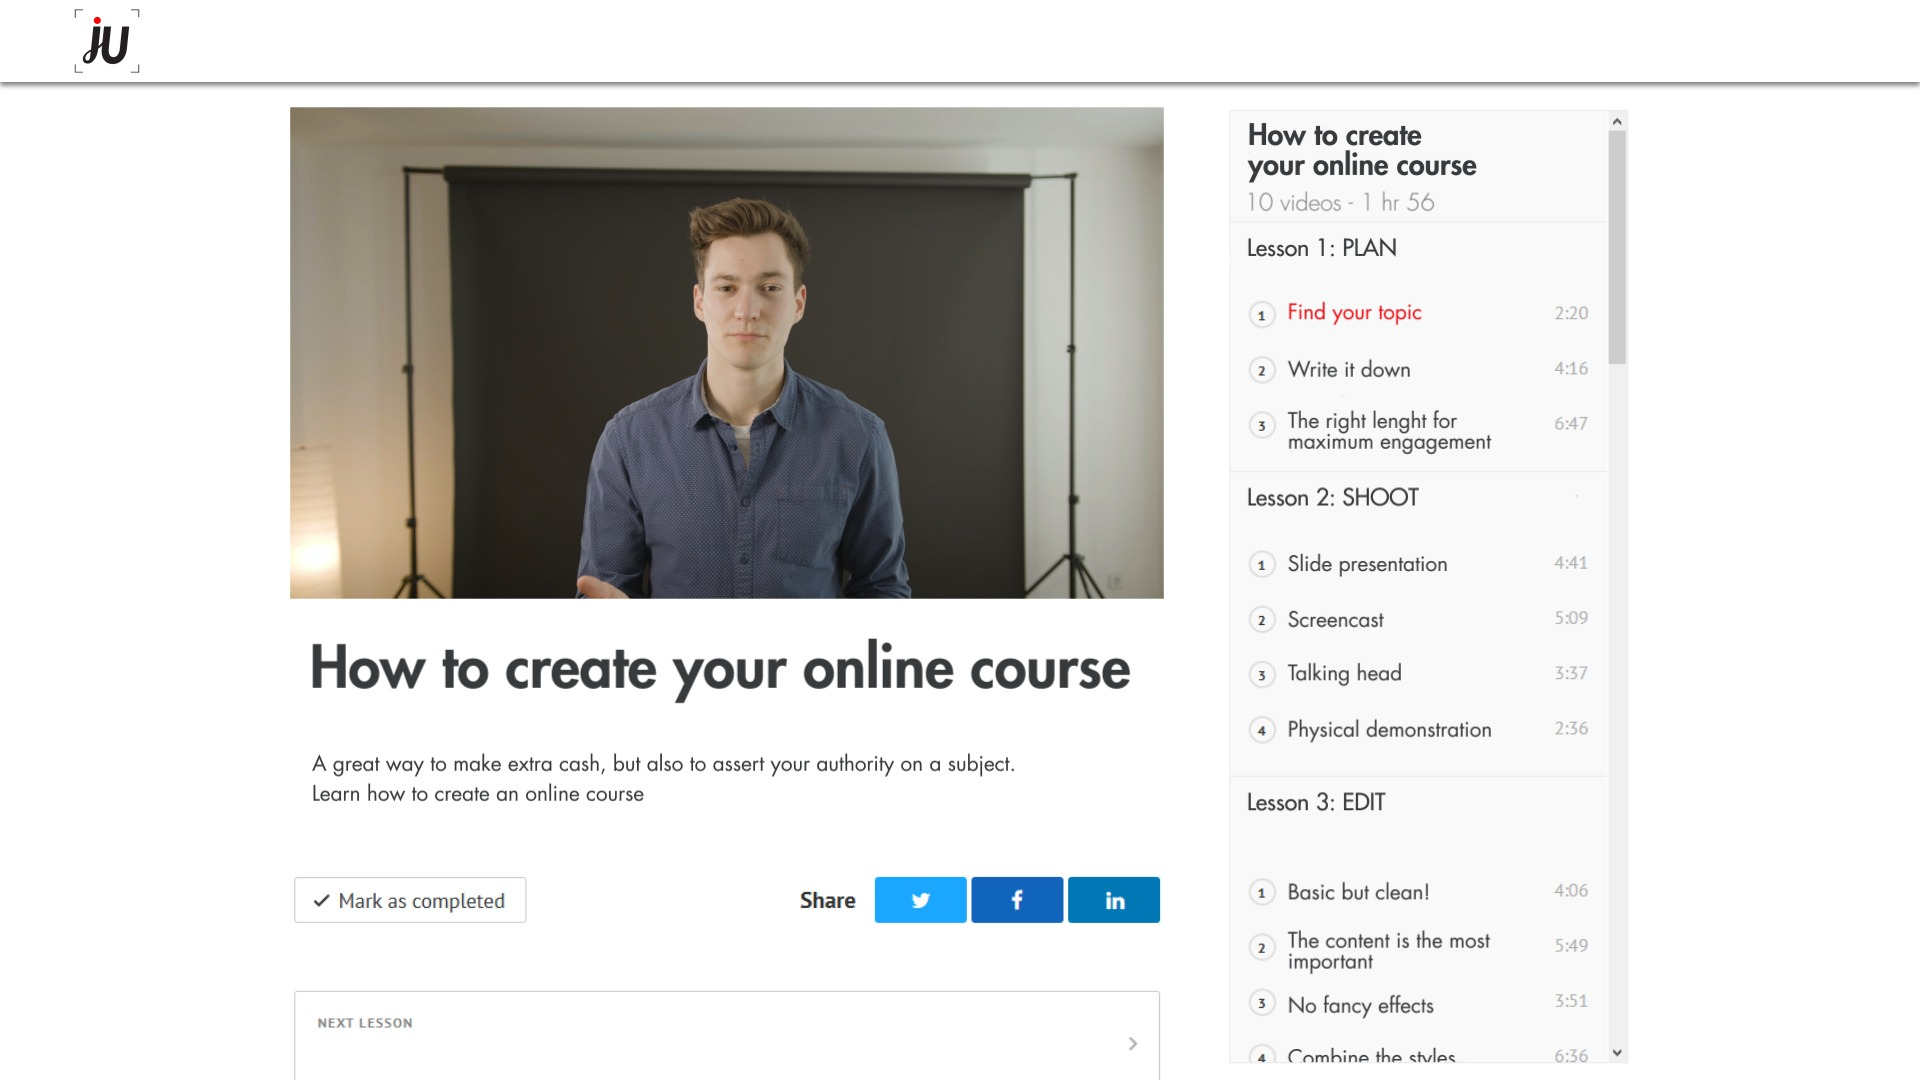 Promote your course